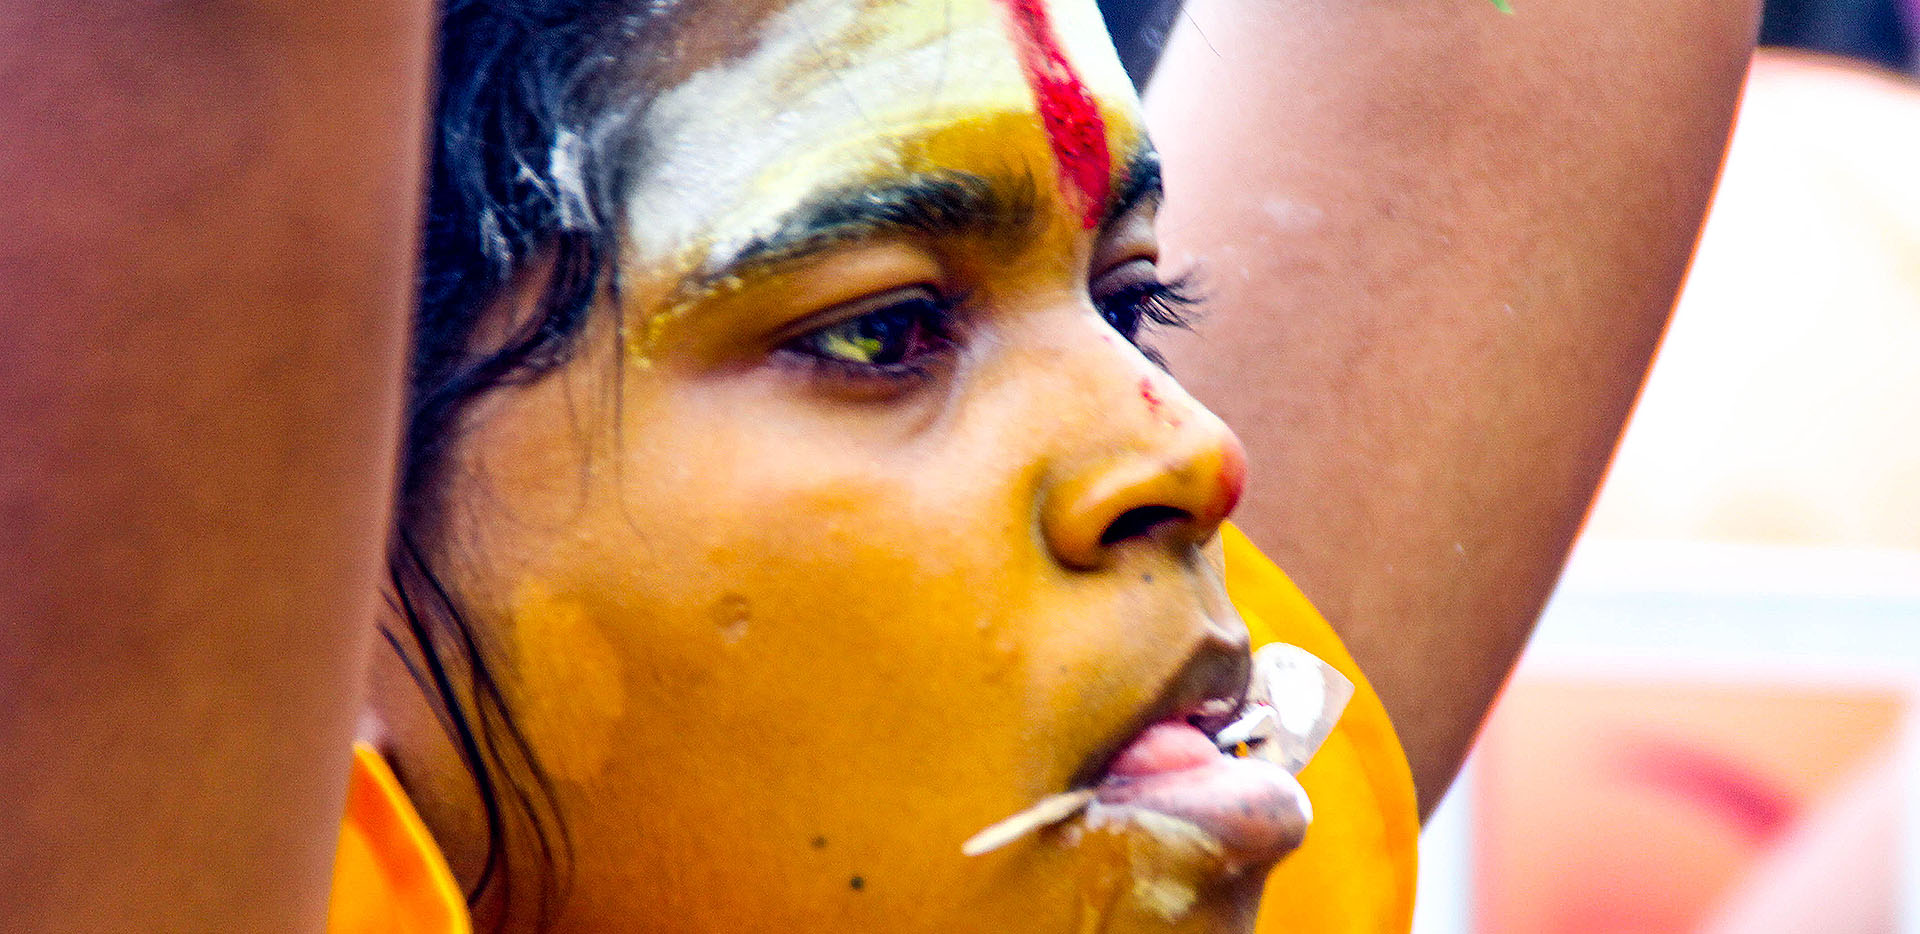 Batu Caves Thaipusam Festival Girl with Face Spike